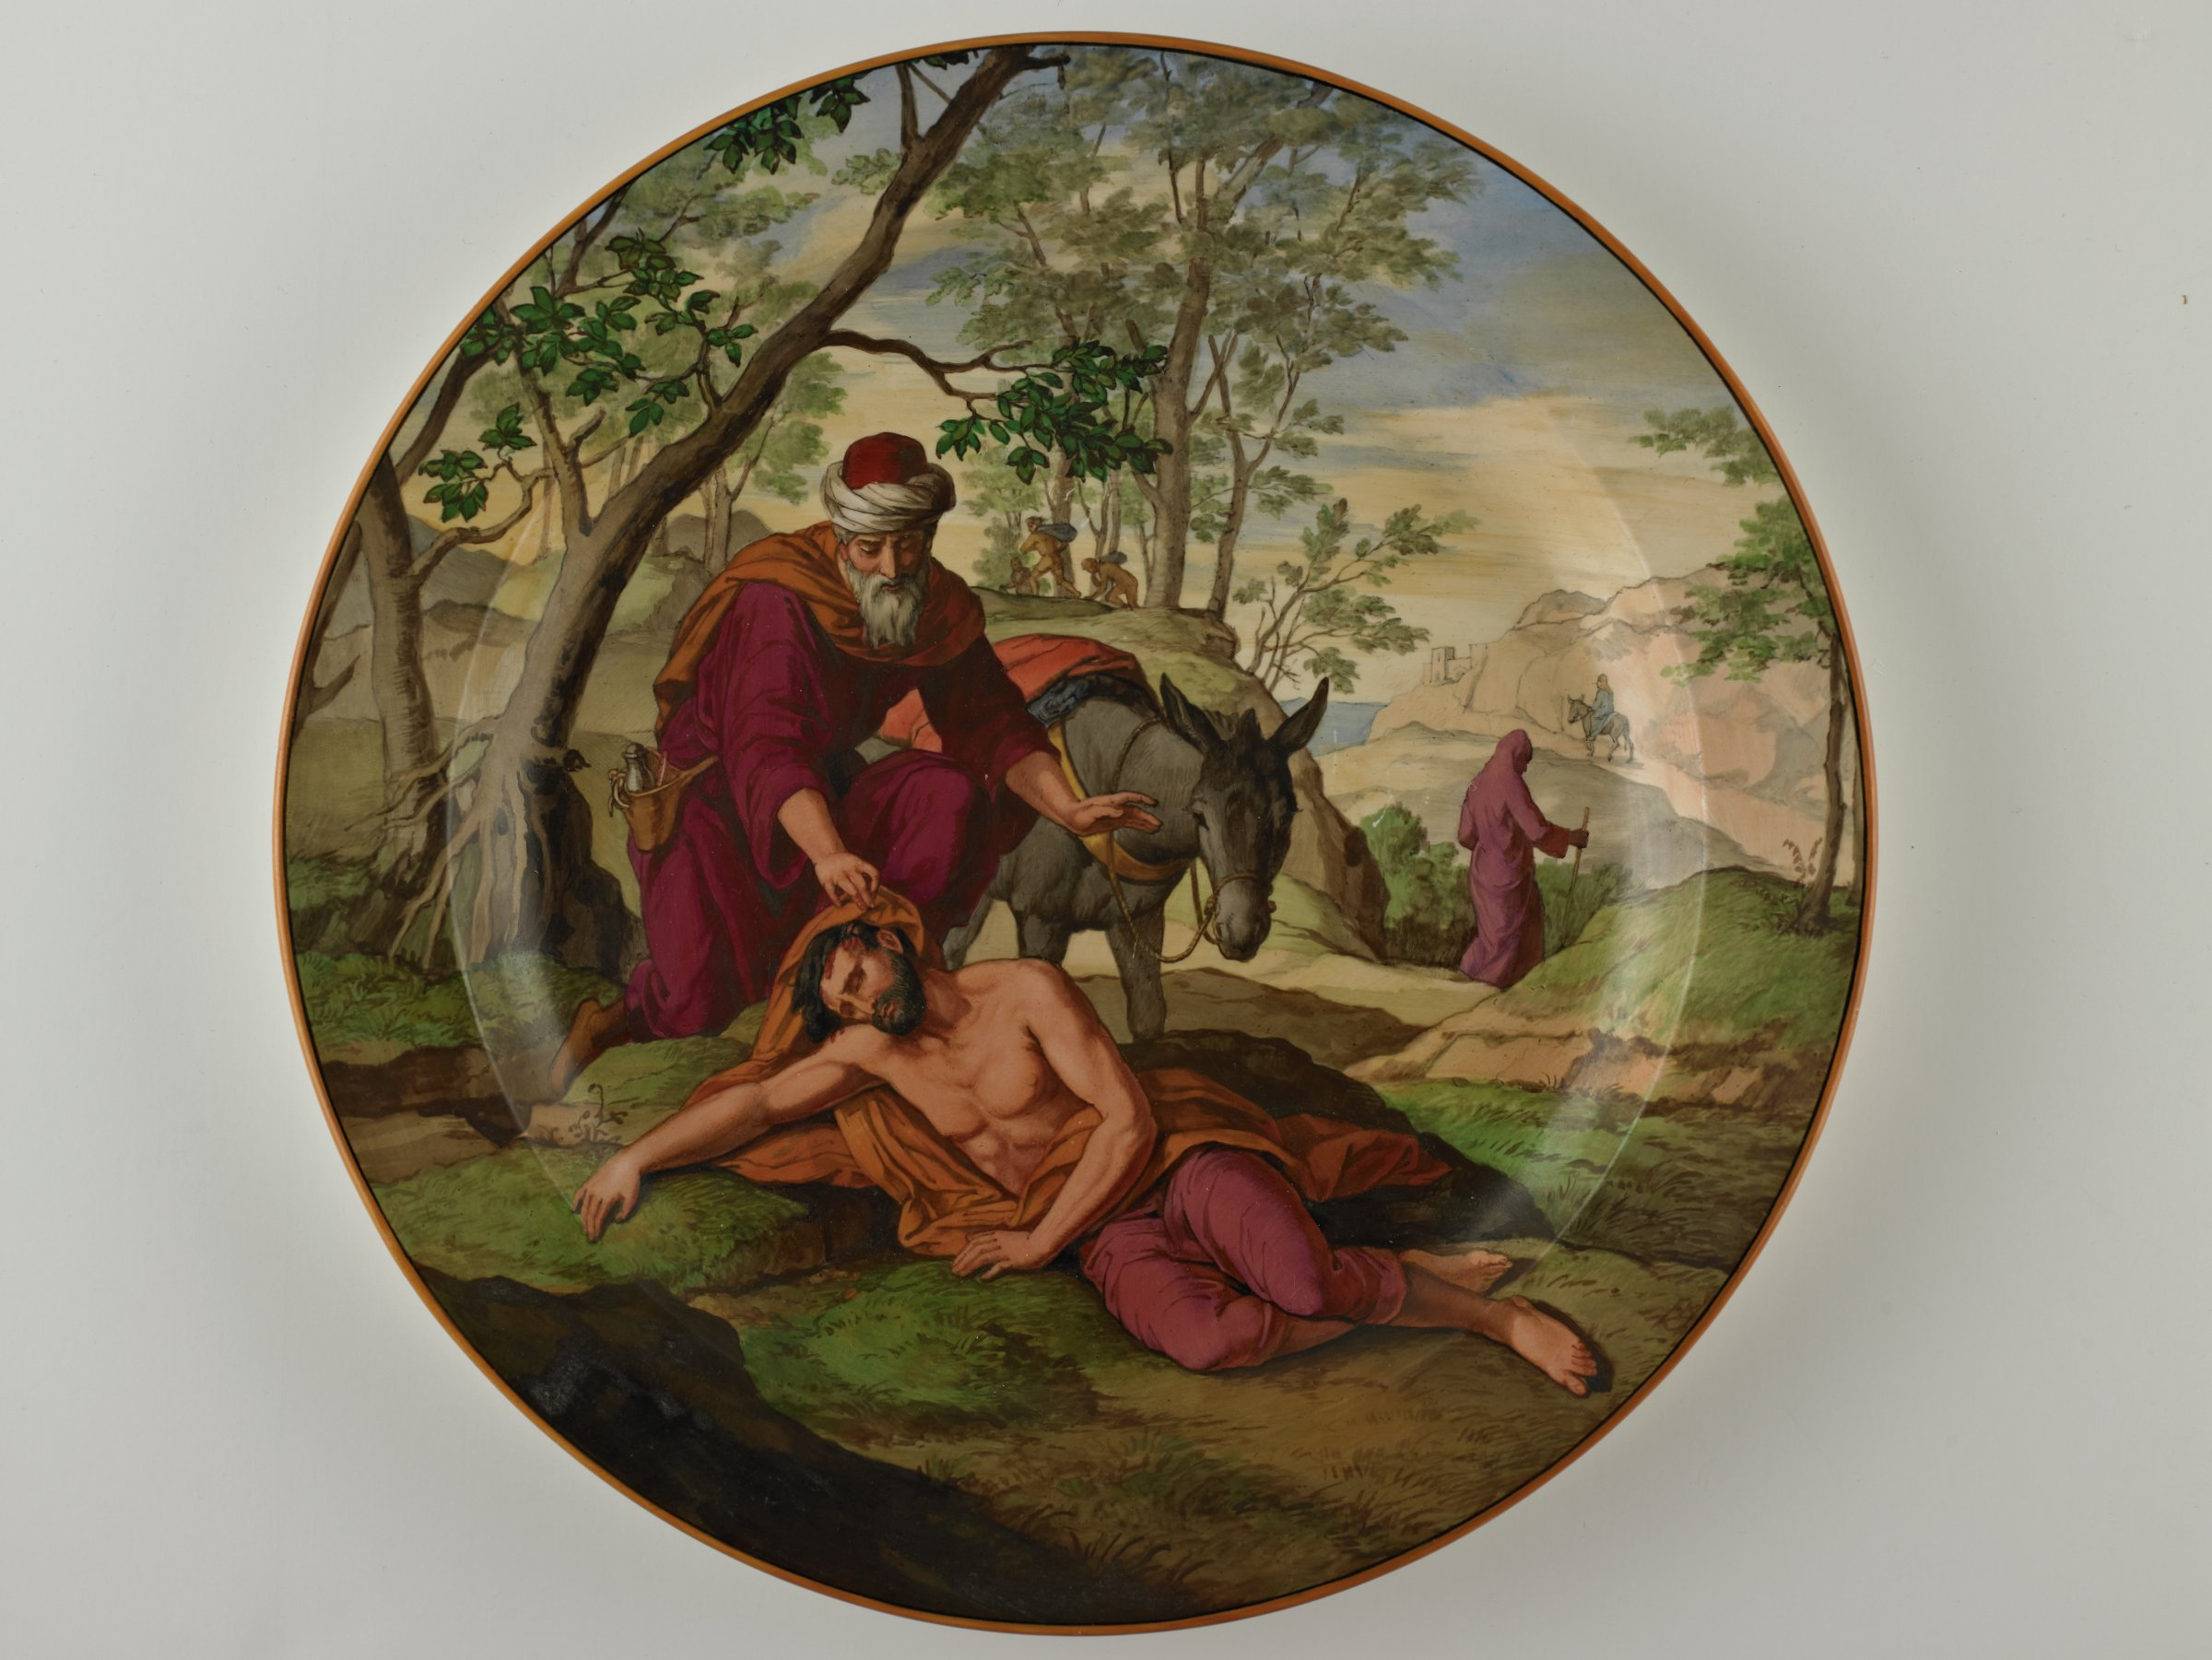 Large plate of creamware with shallow well and wide rim, painted on the front with the scene of the Good Samaritan - in a landscape a man lies unconscious on the road in the foreground while a man with a donkey stops to help, further along the road a cloaked figure with a walking stick walks away, the plate with a mustard-yellow edge.